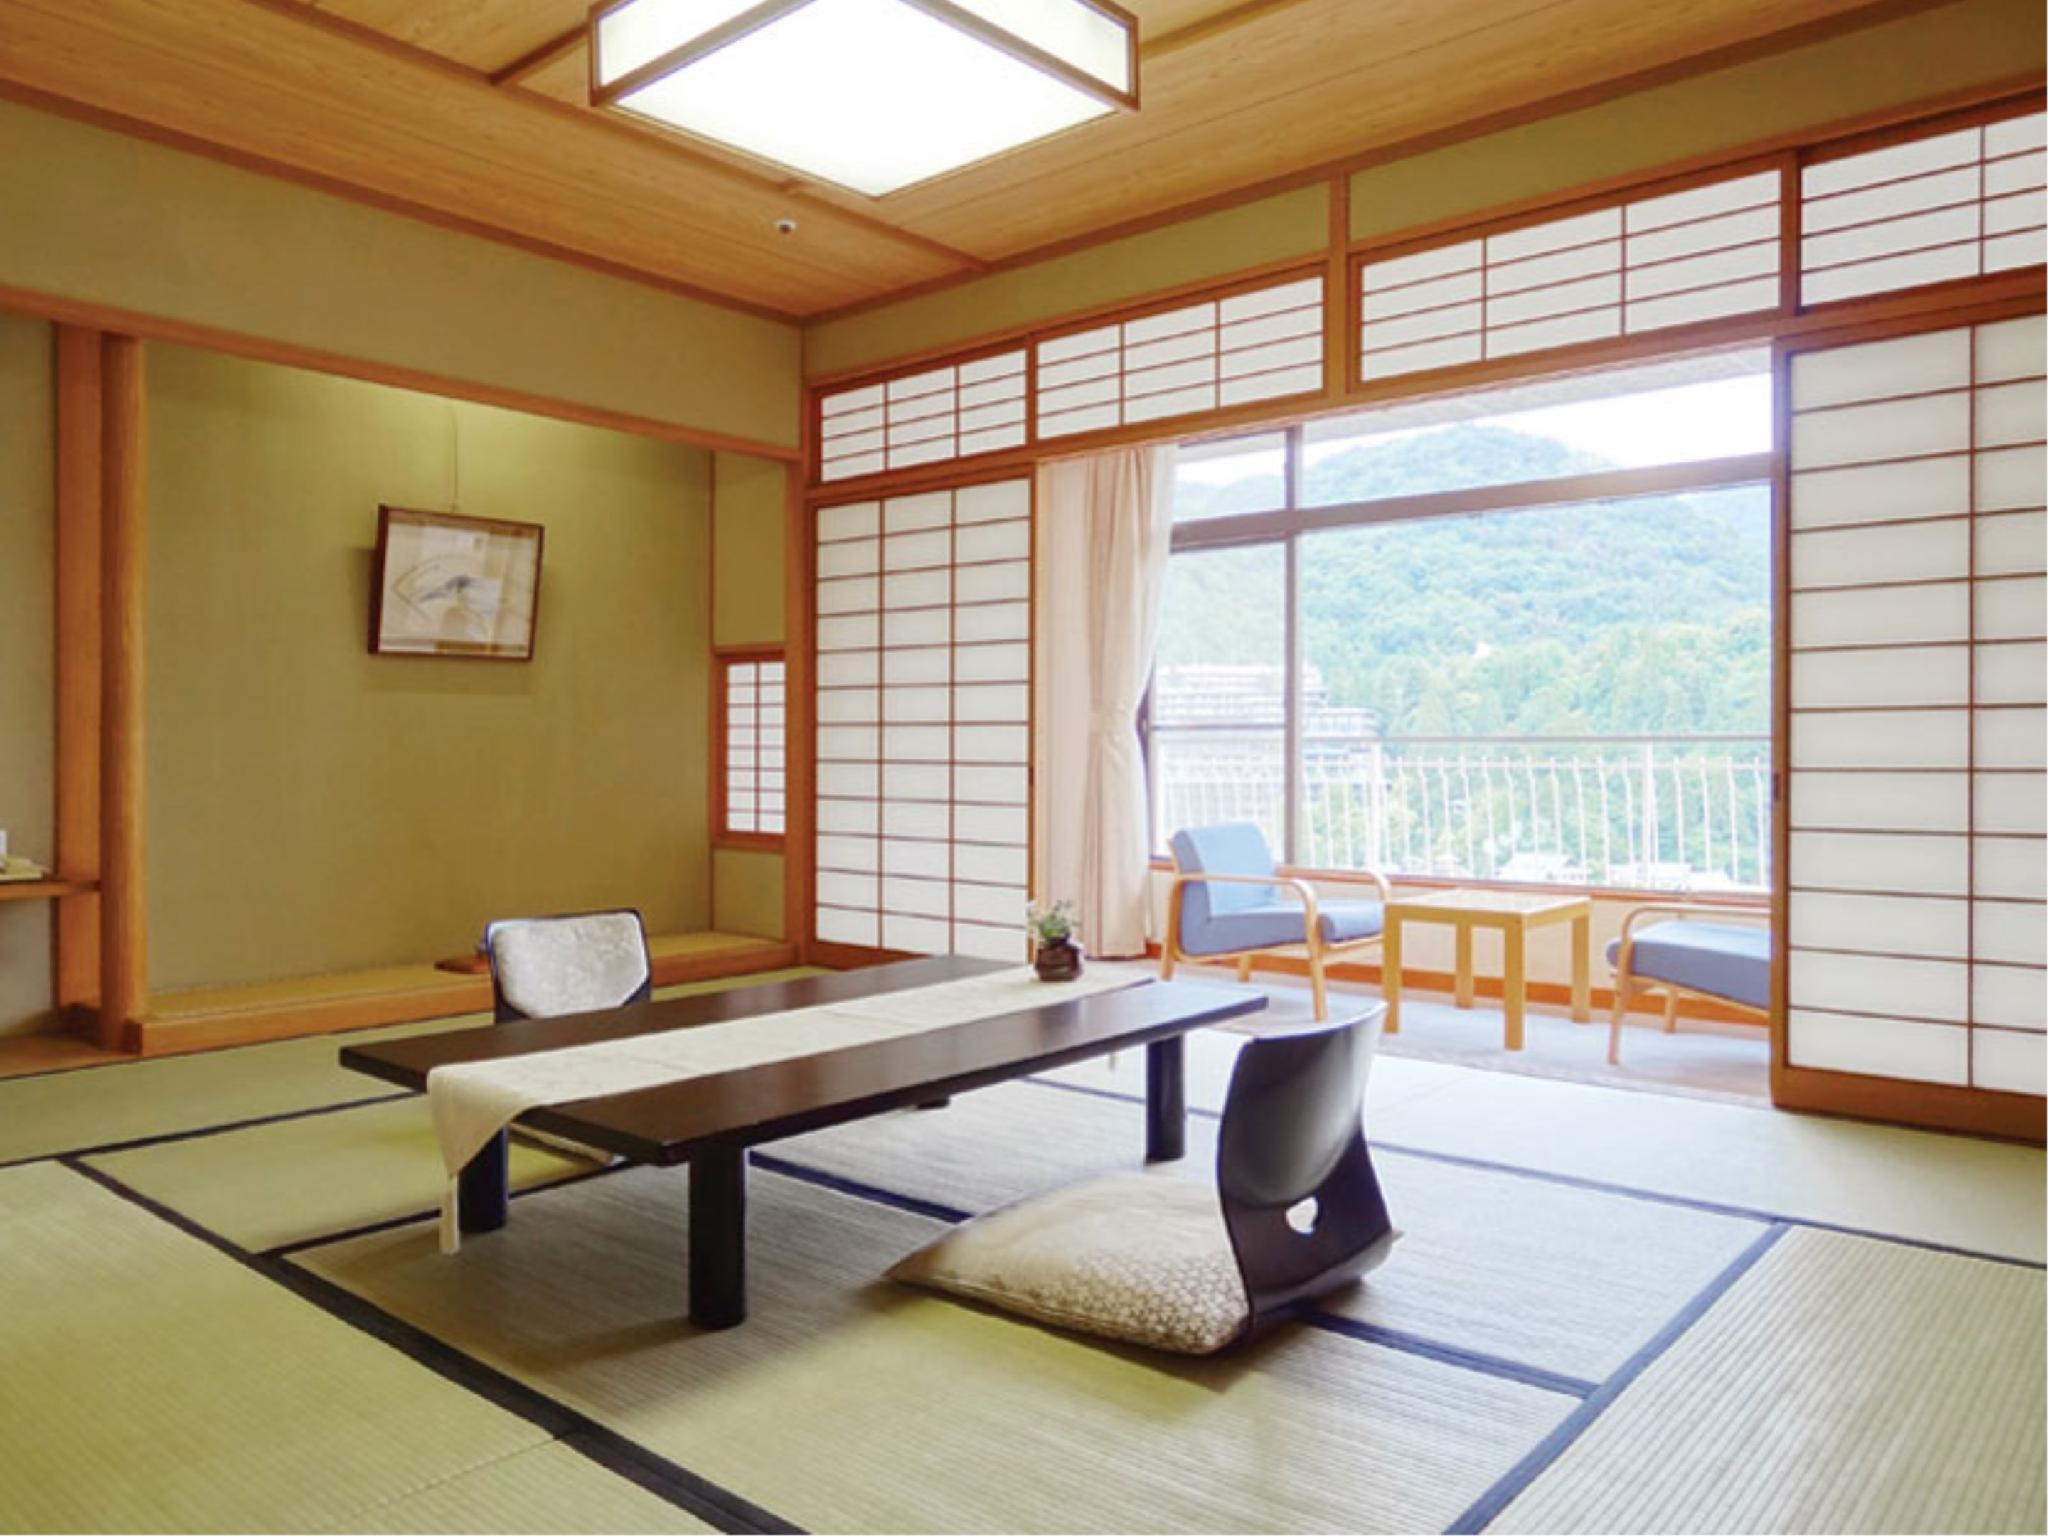 西館 和式房N (Japanese-style Room (Type N, West Wing))